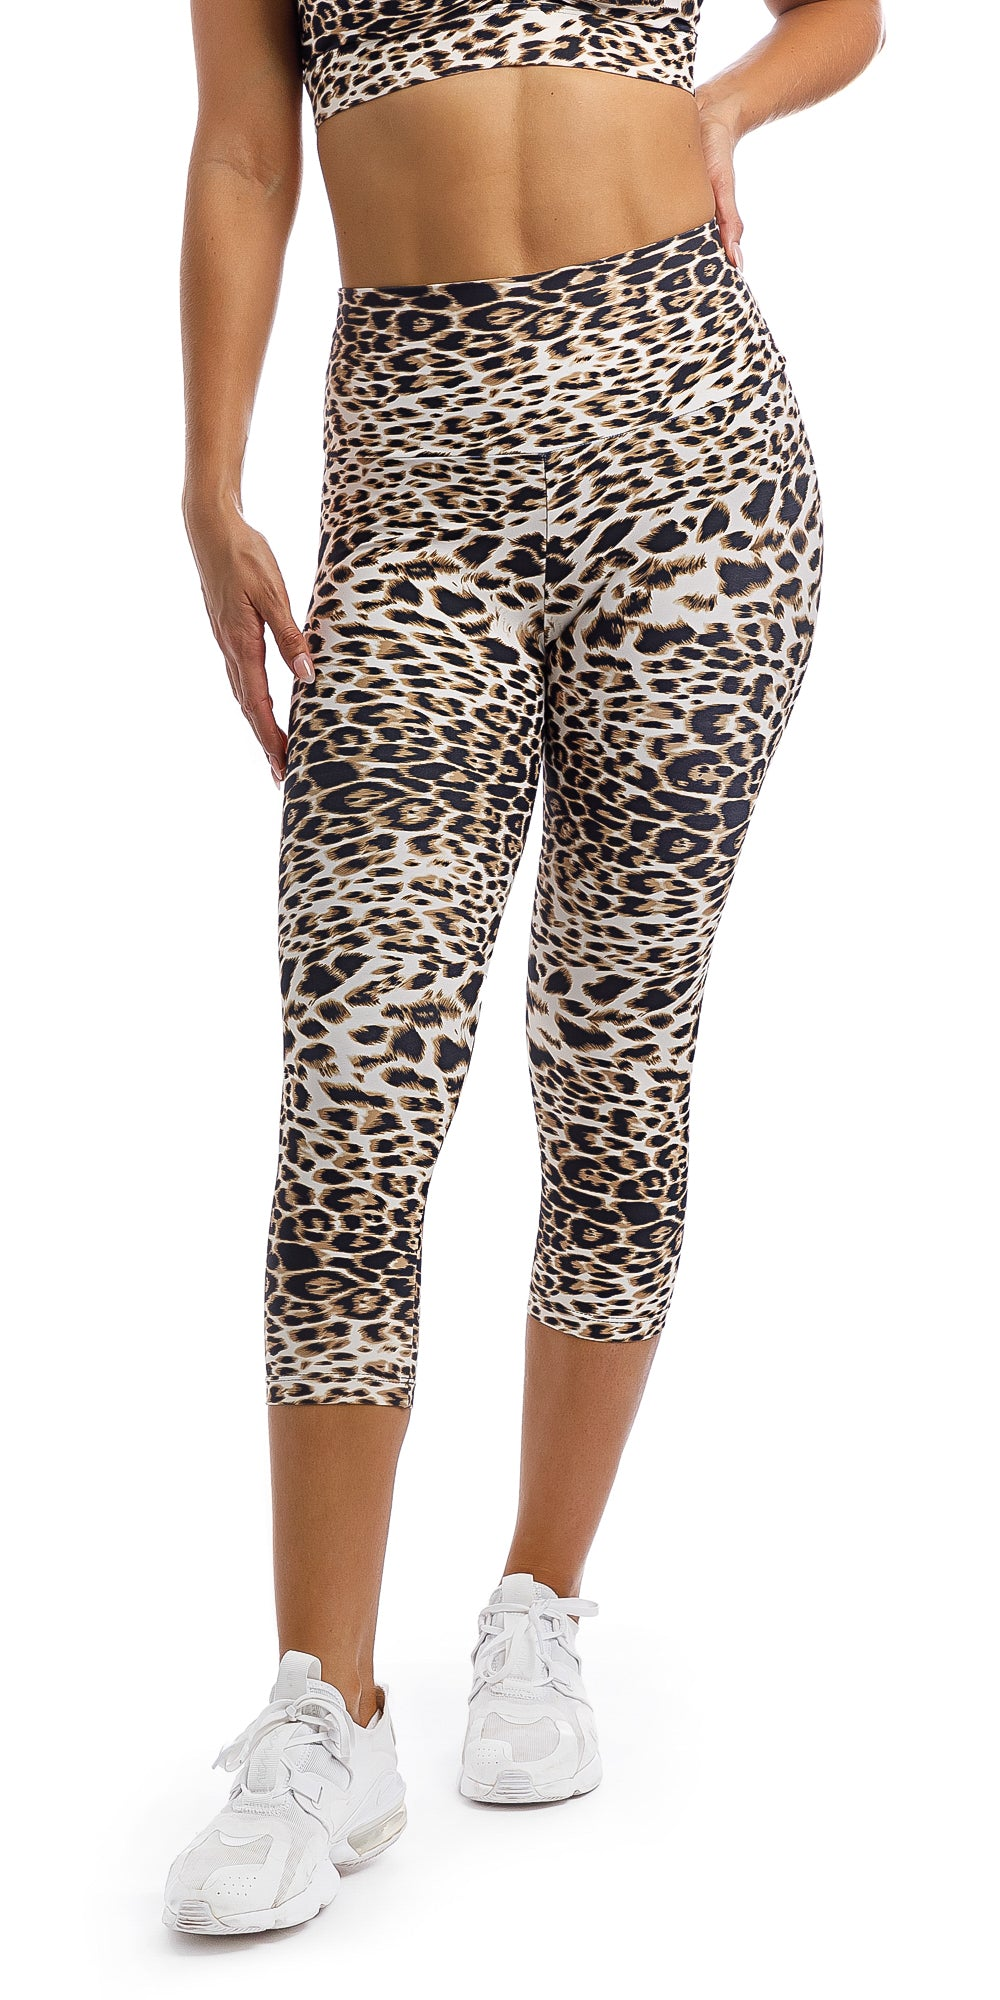 Girl wearing brown & white cheetah print capri leggings & matching infinity bra